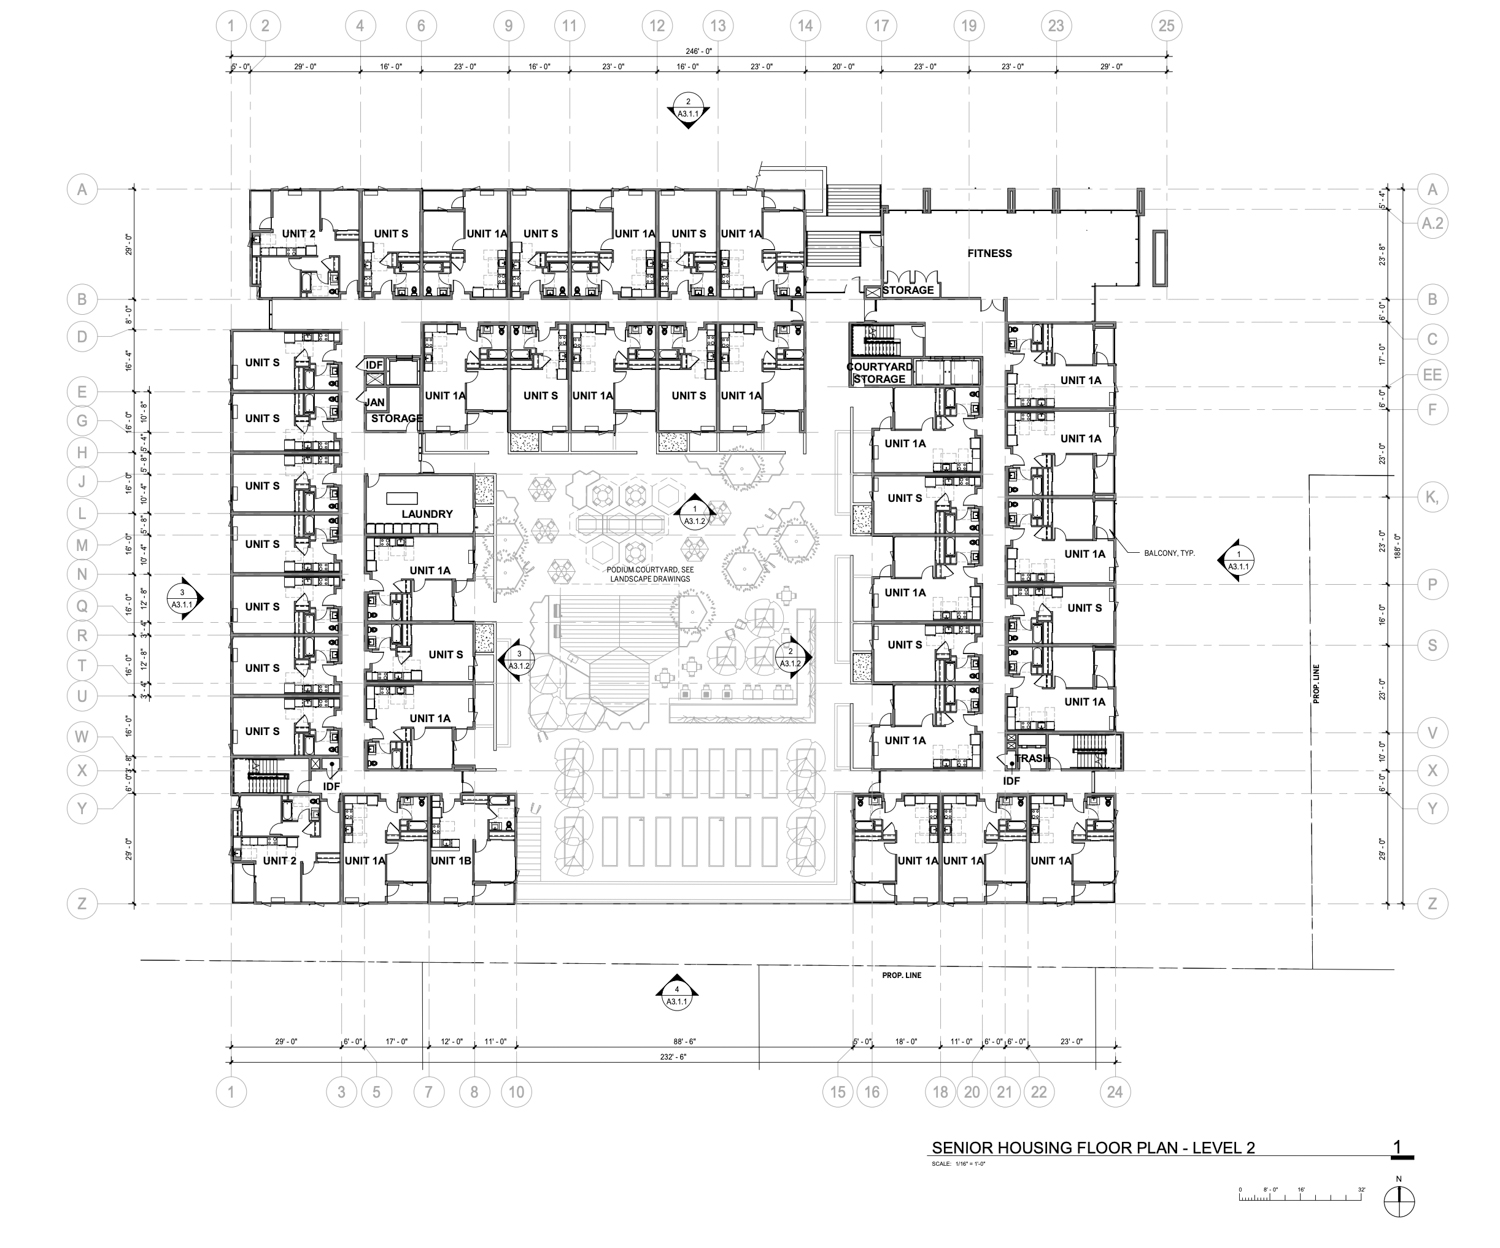 76 North Winchester Street senior housing floor plan level two, drawing by Steingberg Hart